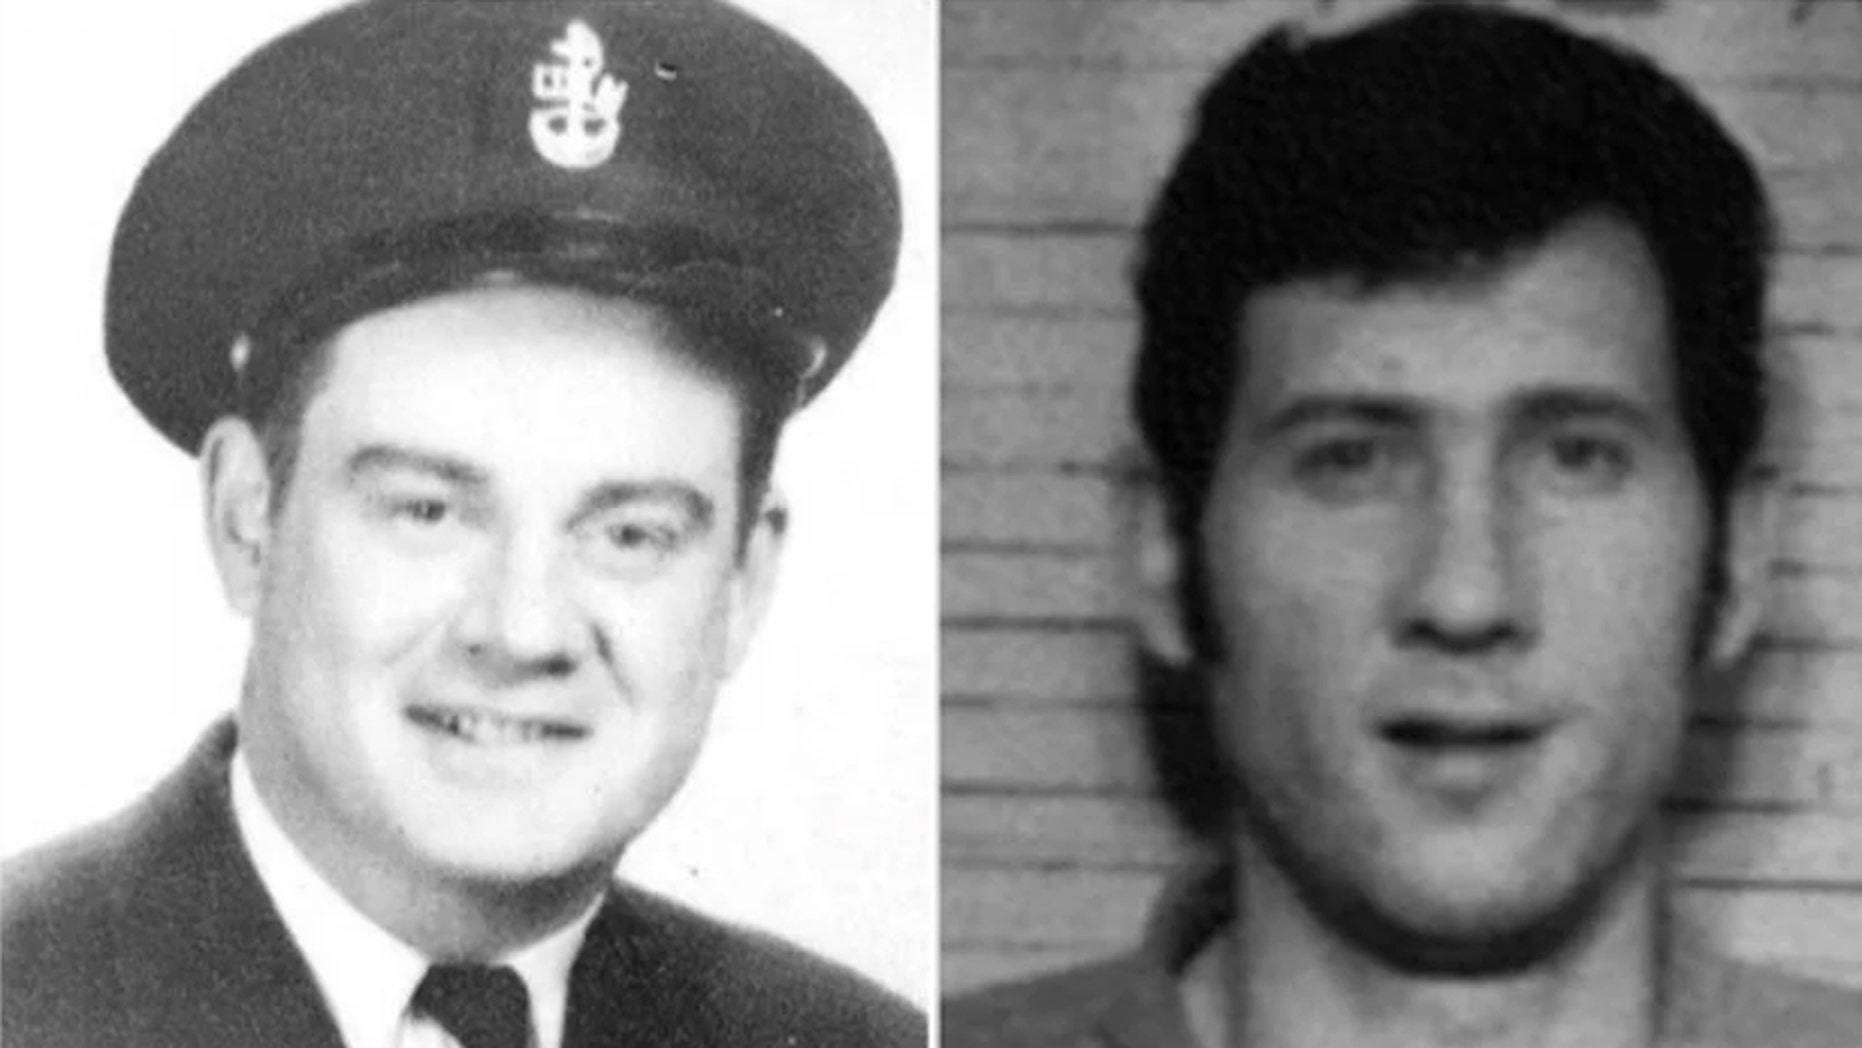 Everett Delano, left, was killed on Sept. 1, 1966 and gone unsolved for over 50 years. Officials revealed Wednesday that Thomas Cass, right, is the suspected killer.